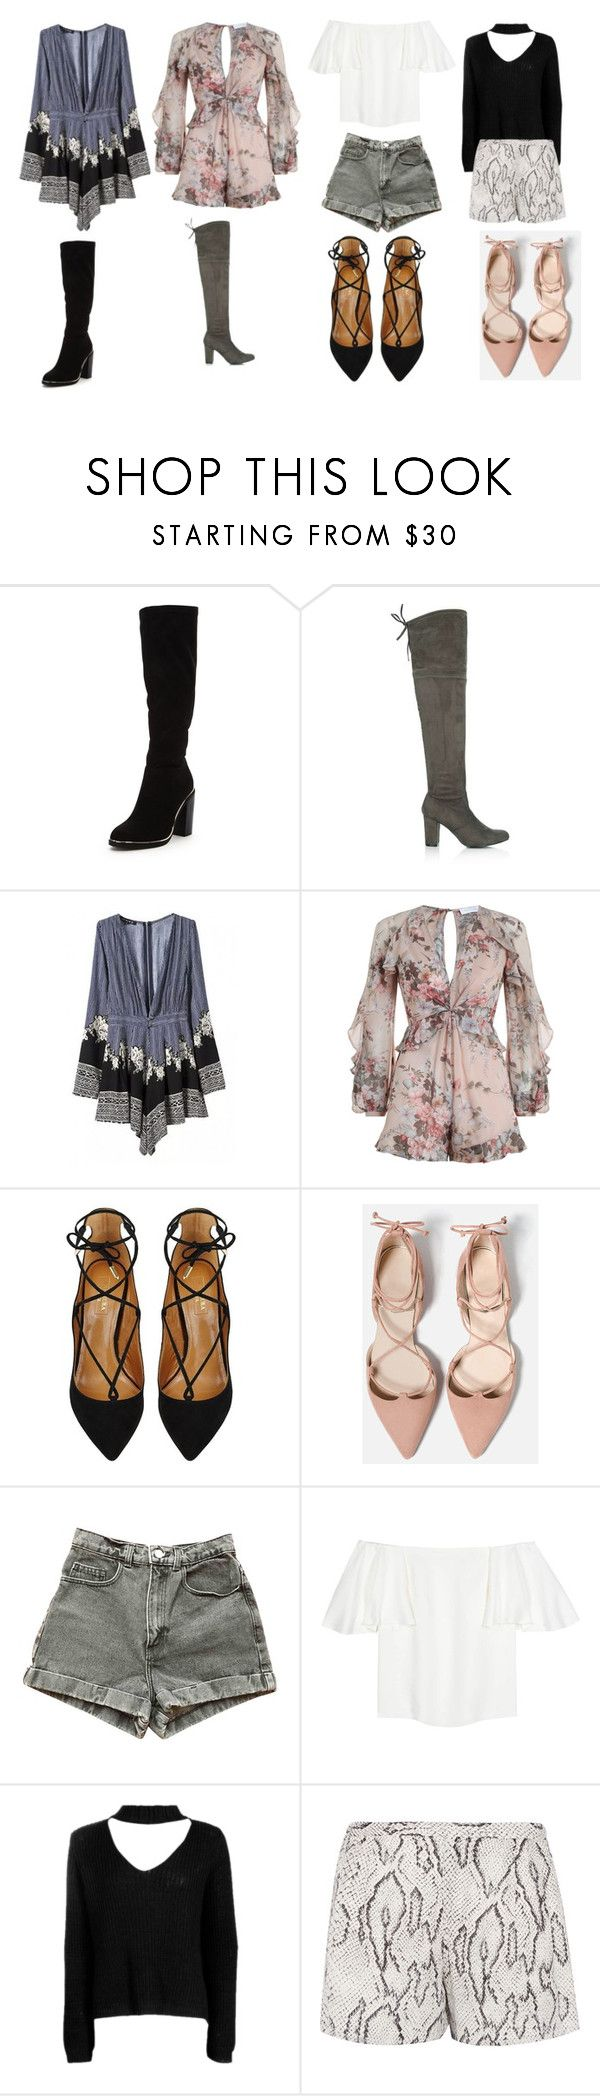 """""""Untitled #16"""" by davisreagan369 on Polyvore featuring WithChic, Zimmermann, Aquazzura, American Apparel, Valentino, Boohoo and Haute Hippie"""